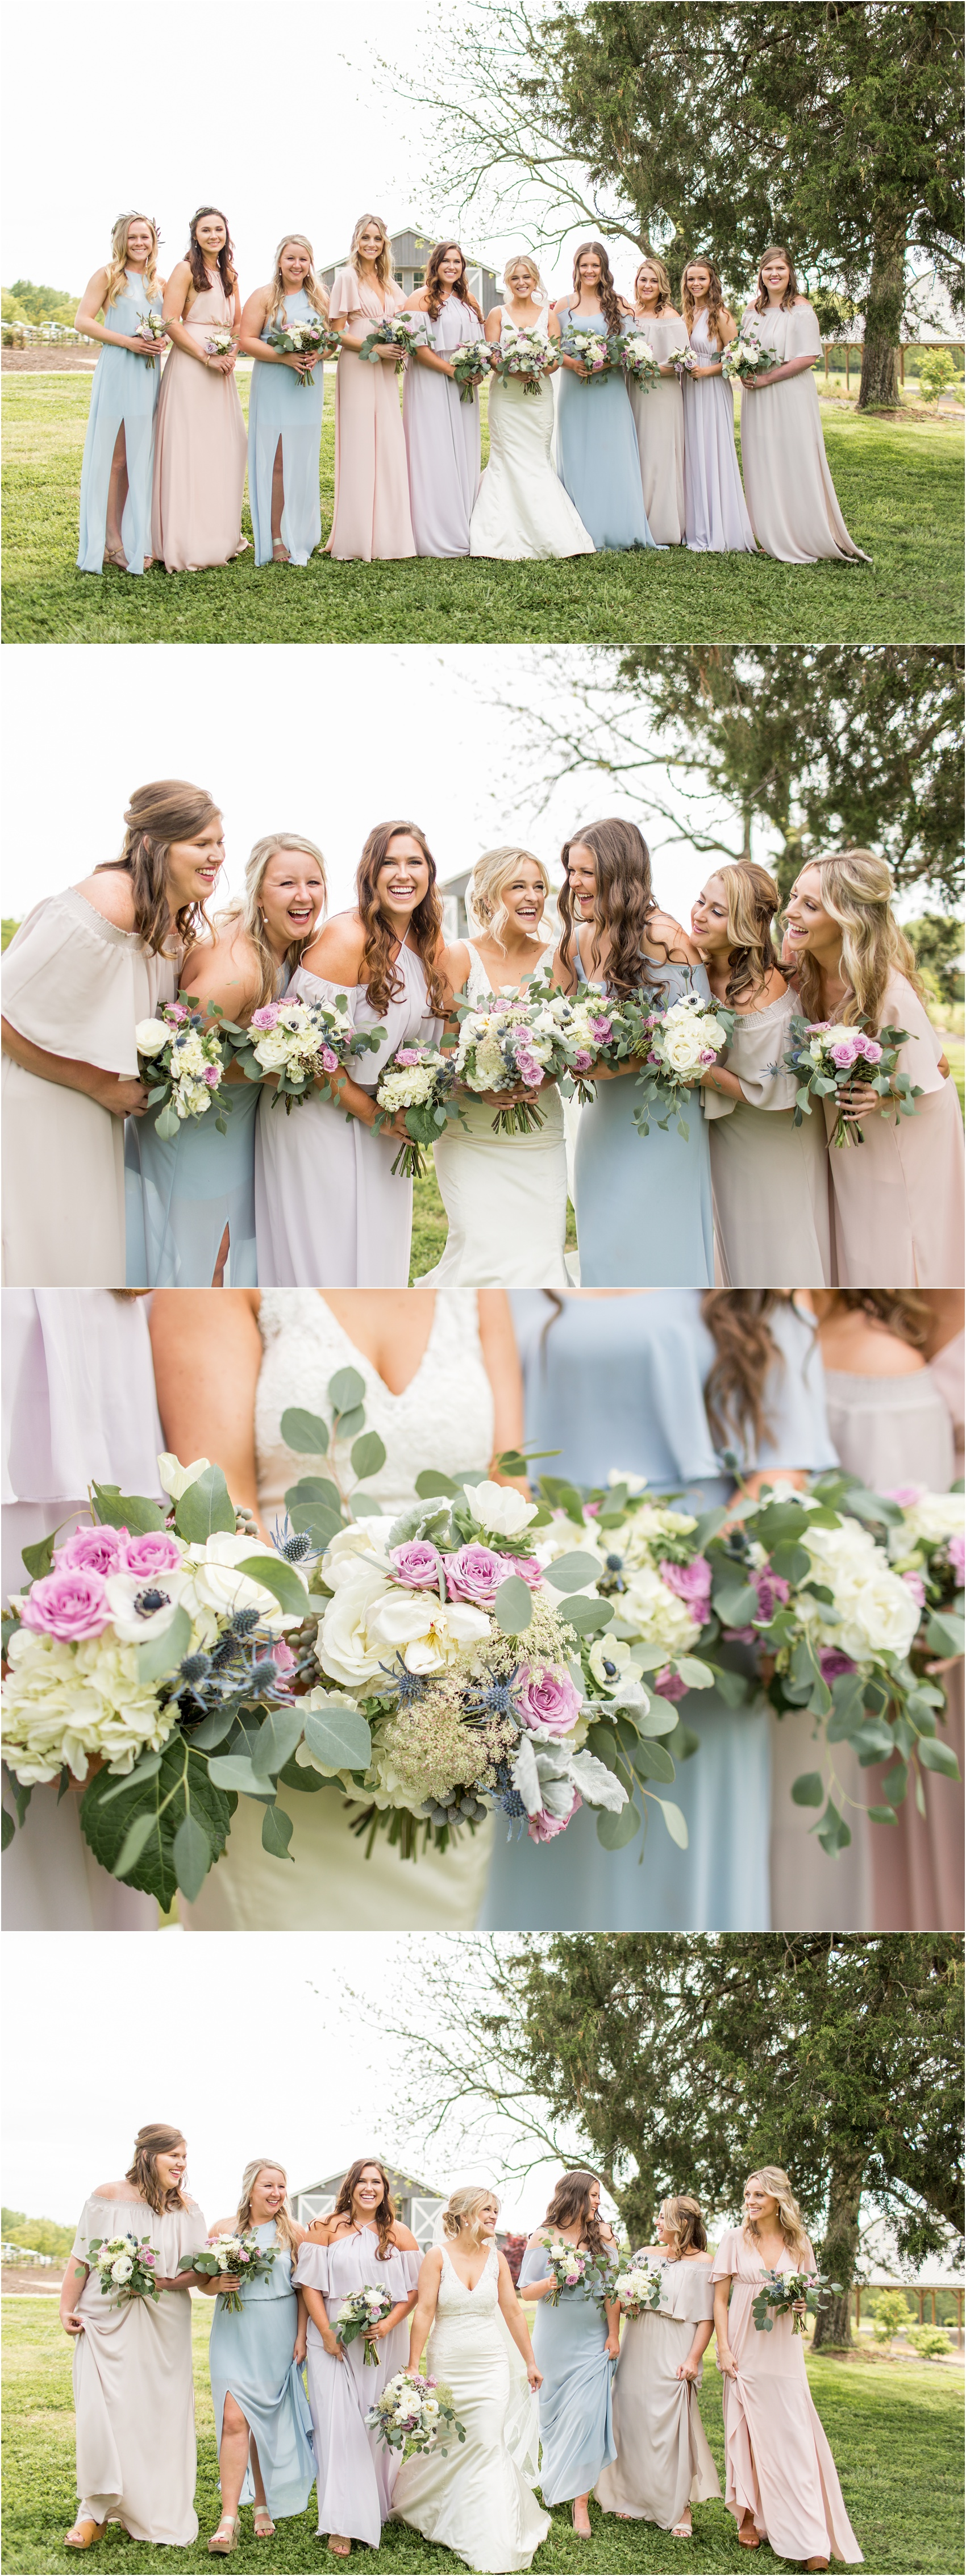 Bleckley Wedding- Sneak Peek-68.jpg